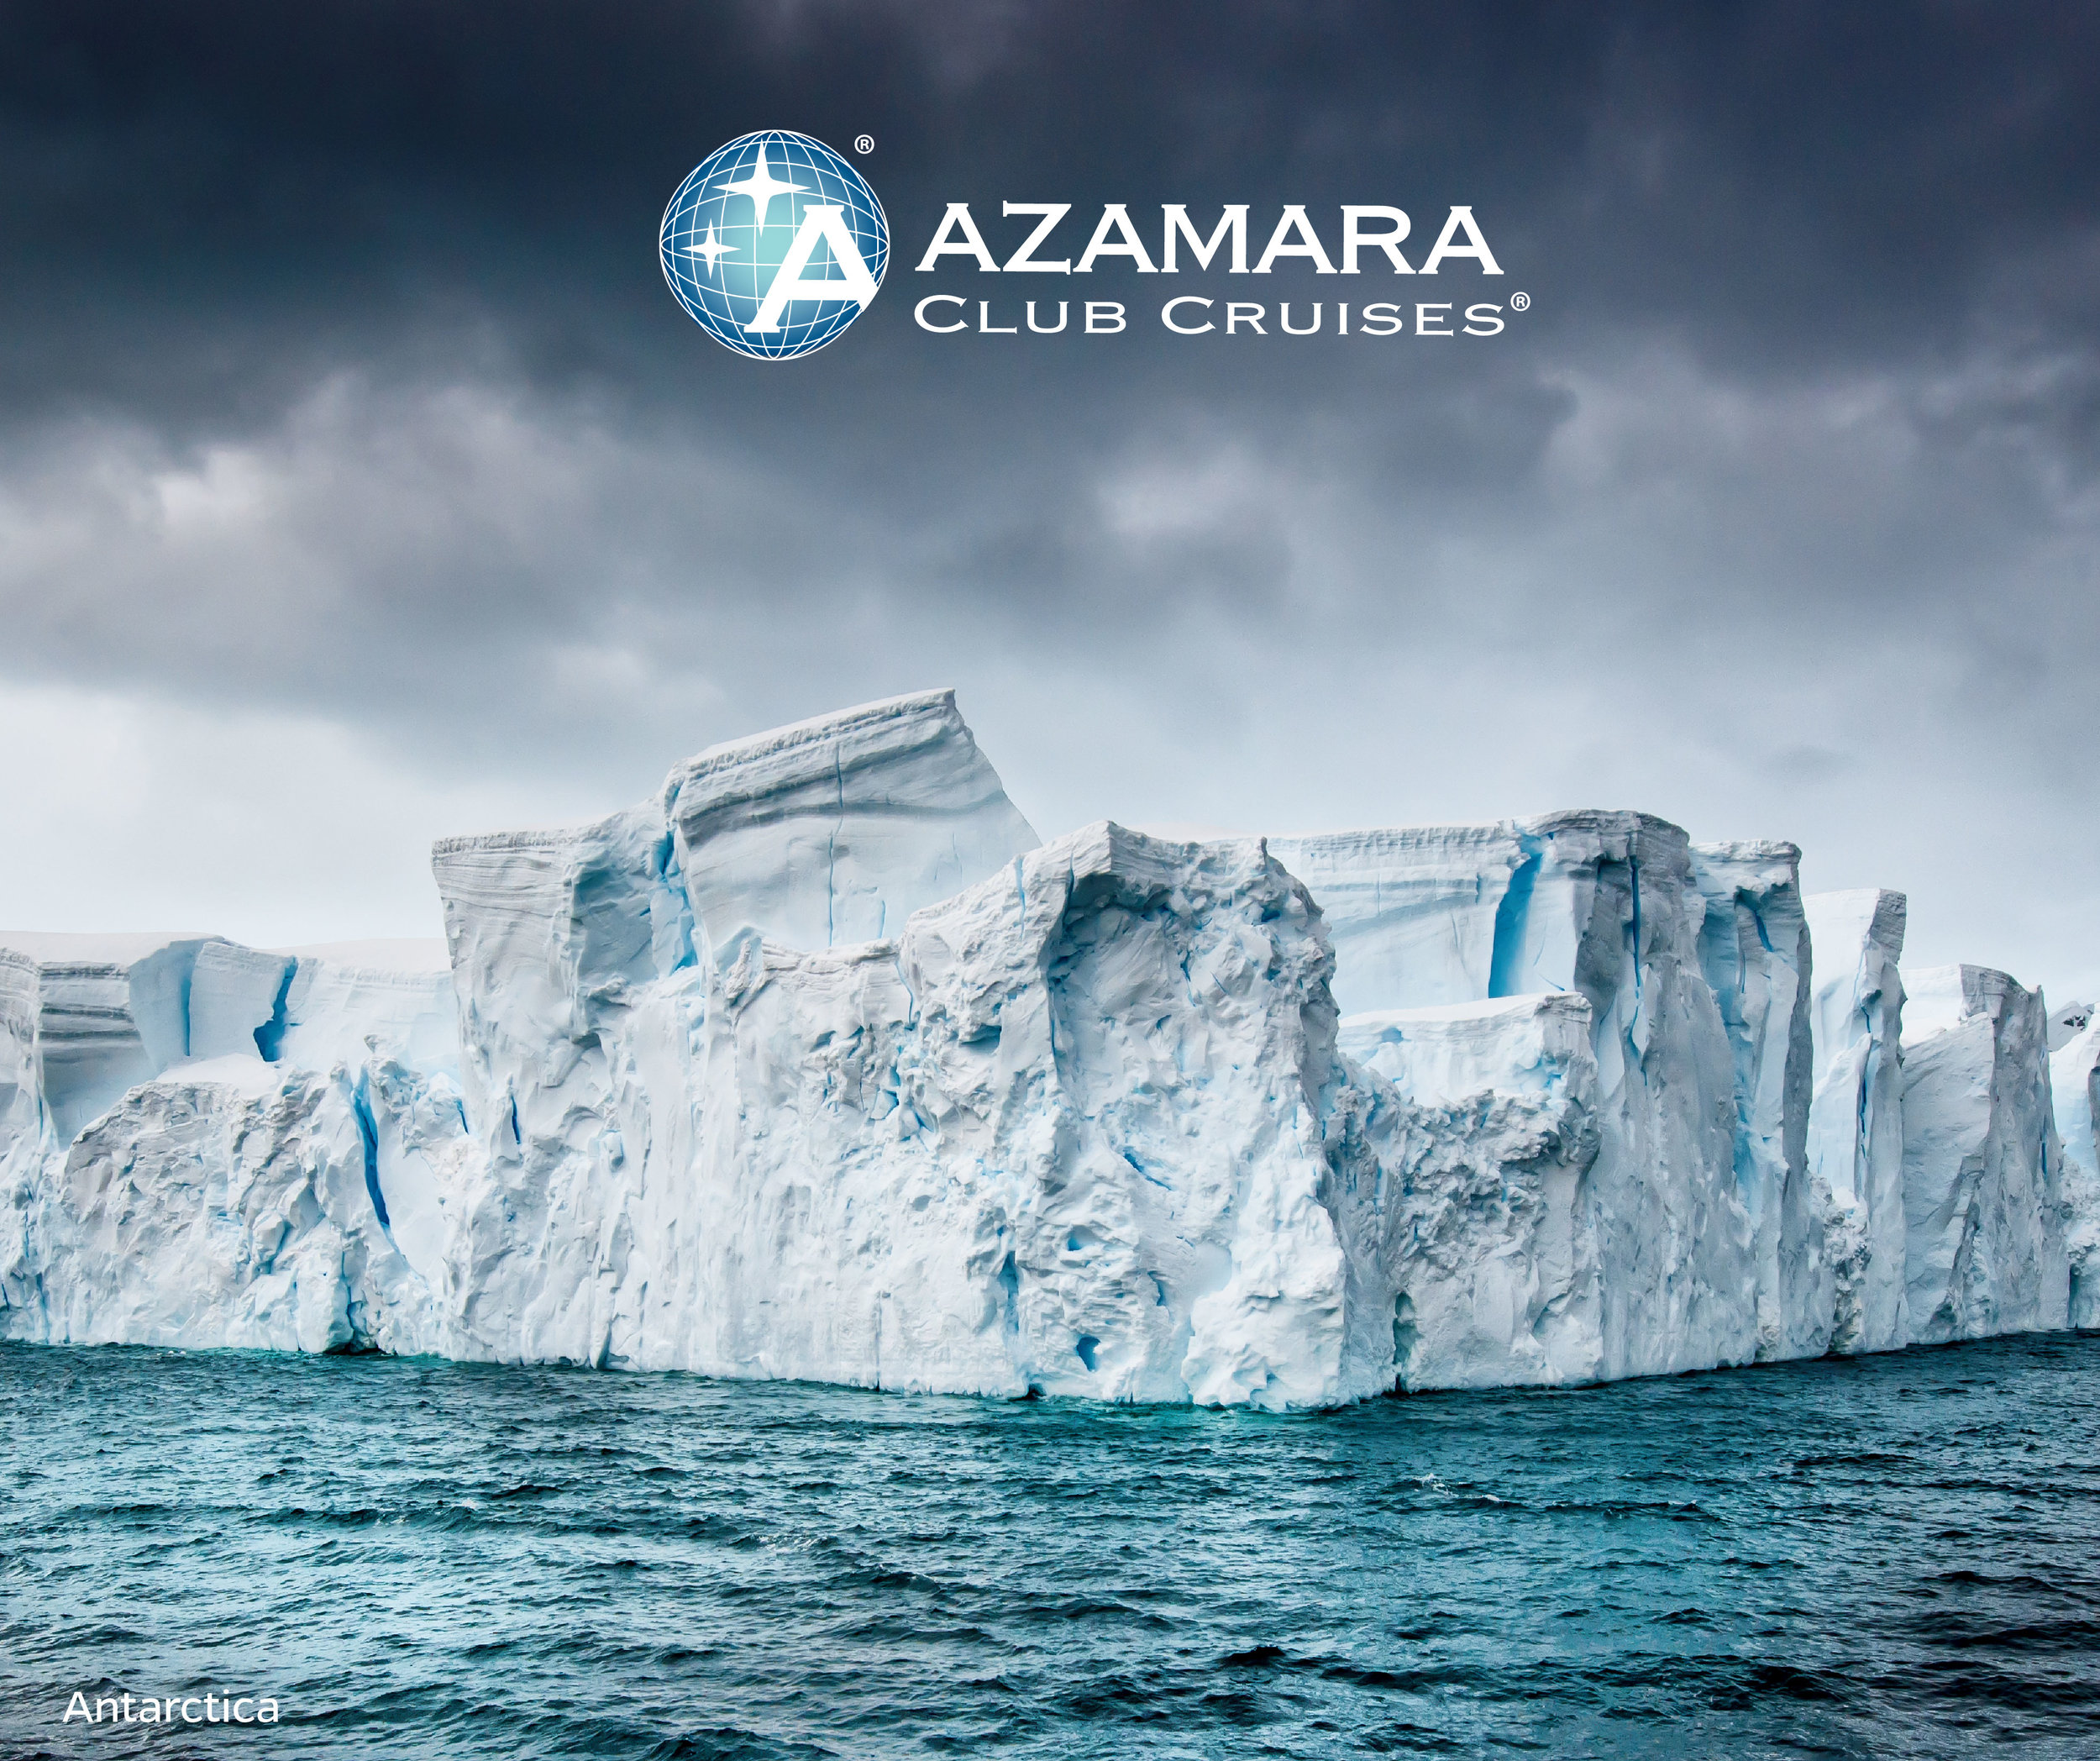 If Antarctica isn't on your bucket list, it should be—especially aboard Azamara Pursuit!